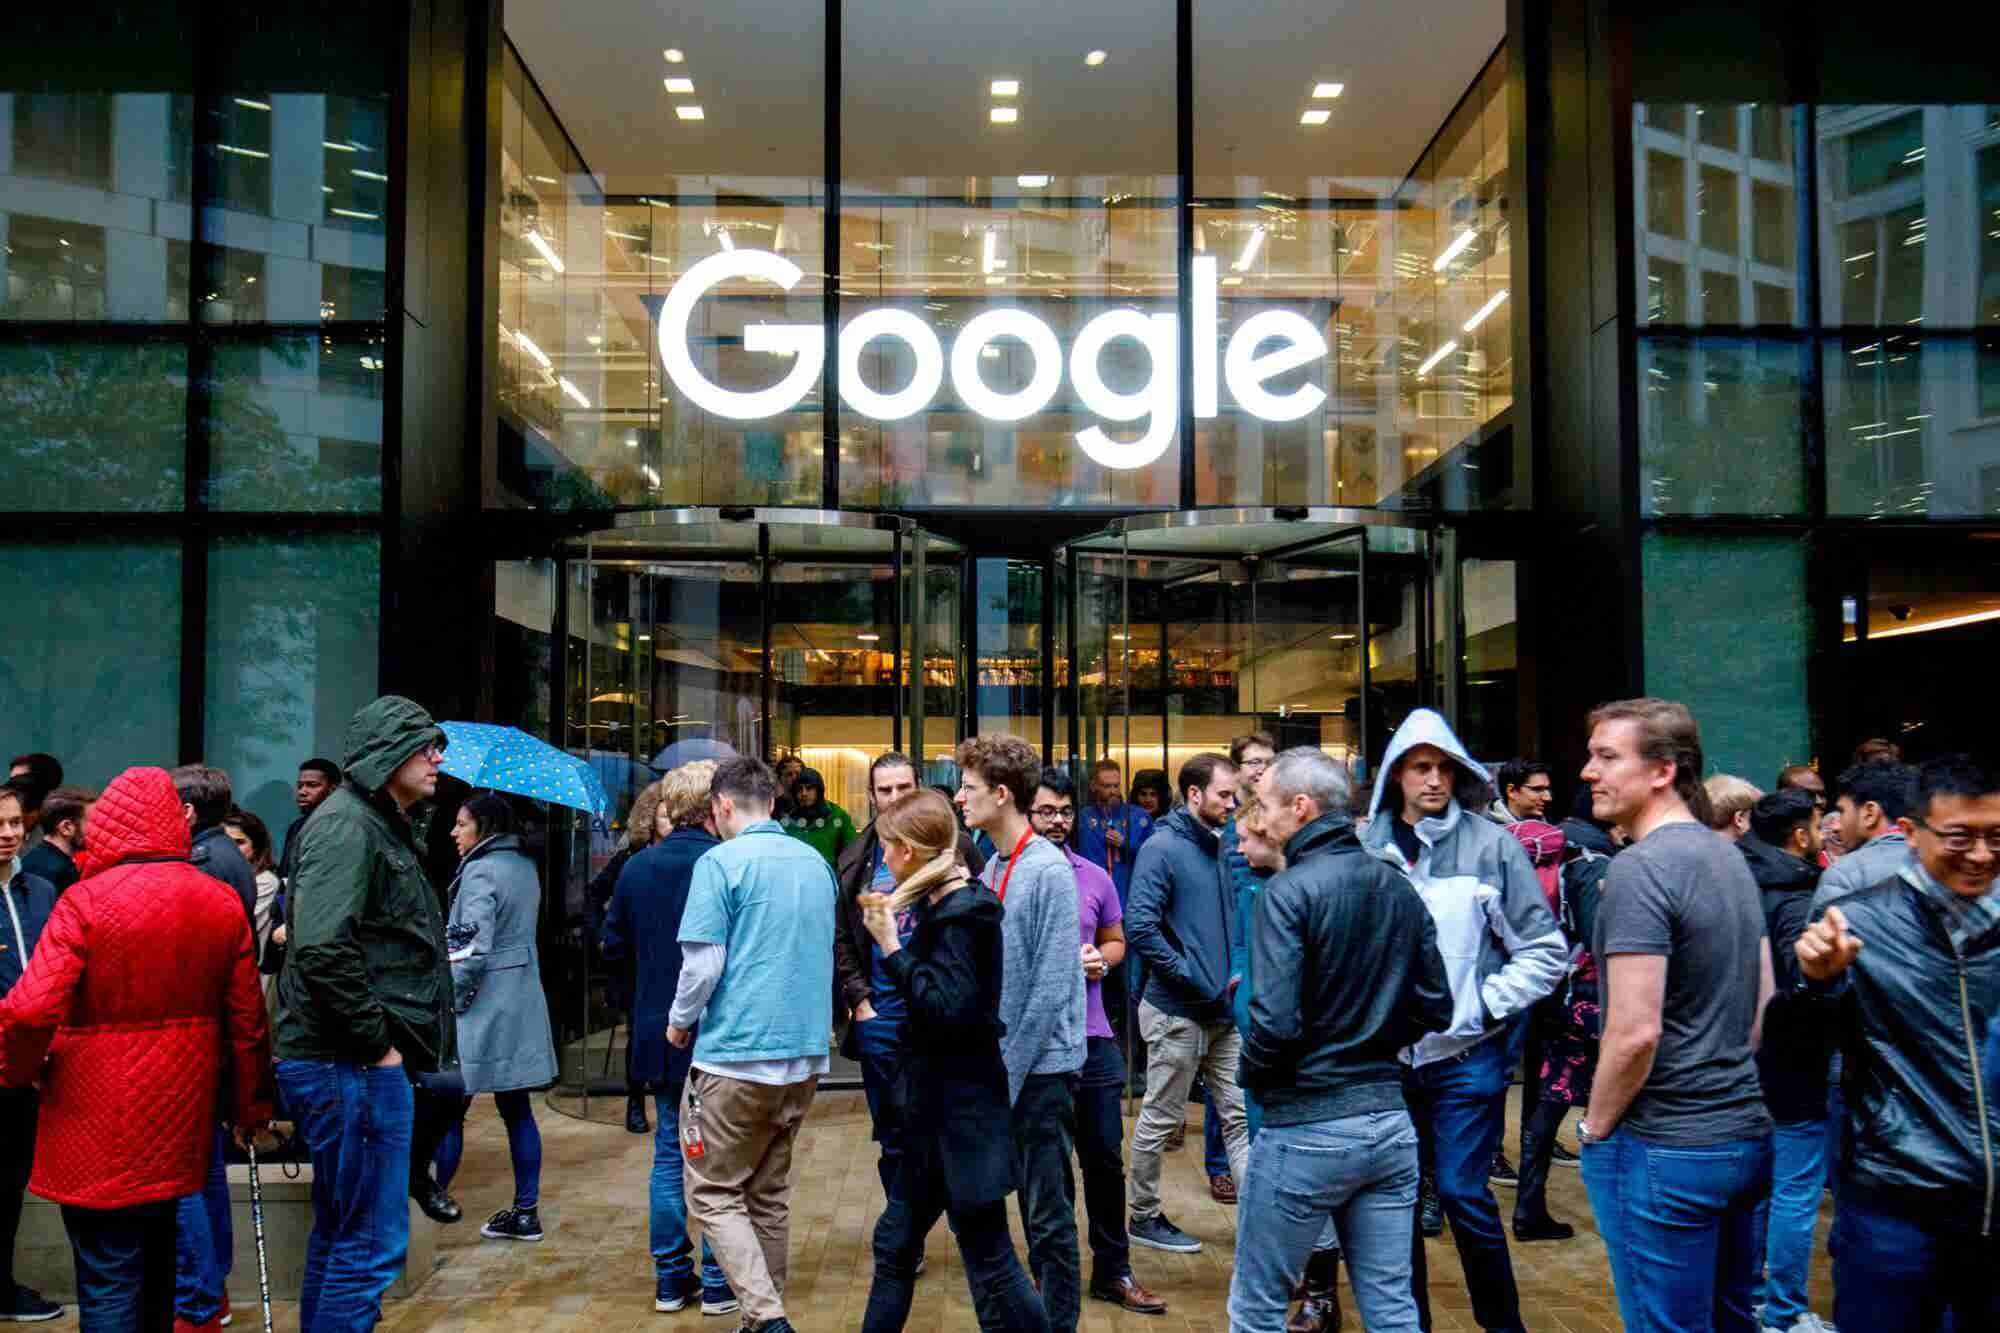 More Than 1,500 Google Workers to Stage Walkout Over Sexual Misconduct...